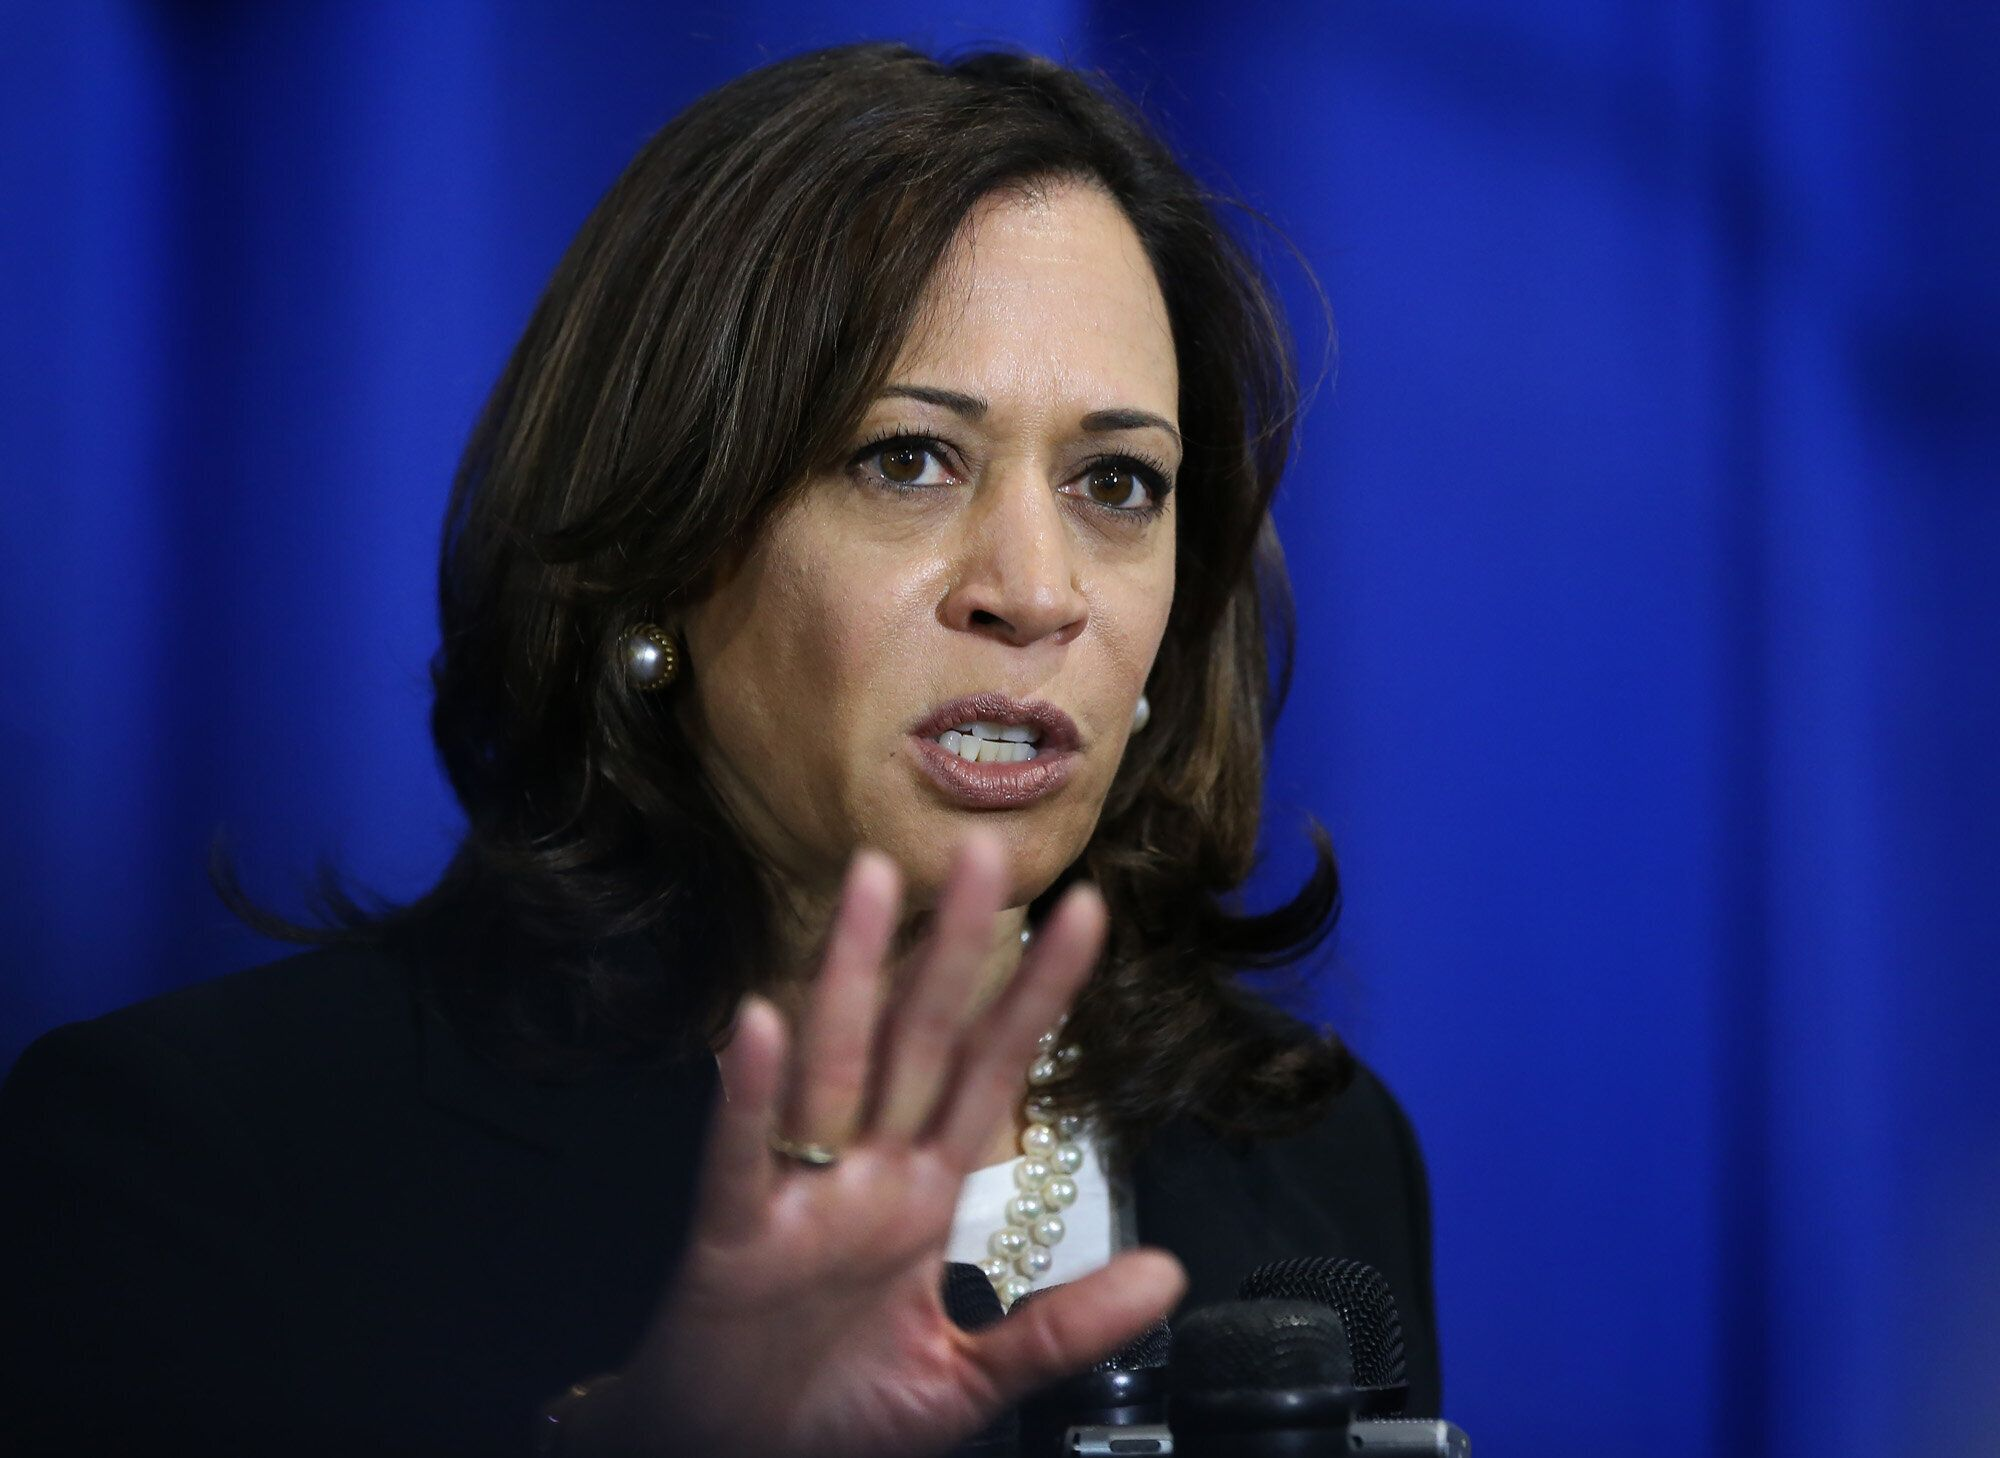 Wannabe dictator Kamala Harris thinks Twitter should ban Trump